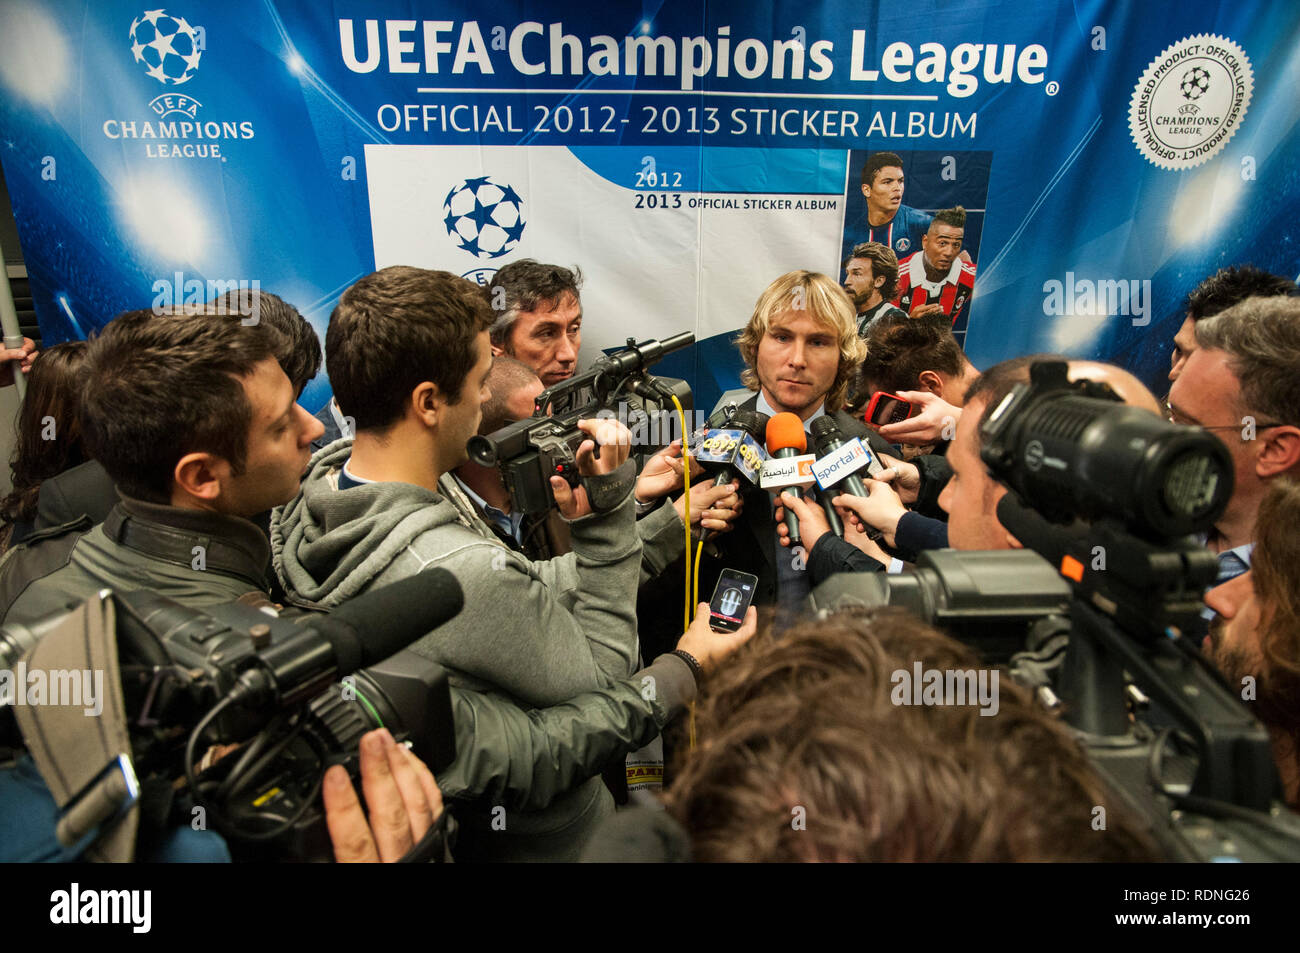 Pavel Nedved at the Panini Champions League 2012 album presentation - Stock Image